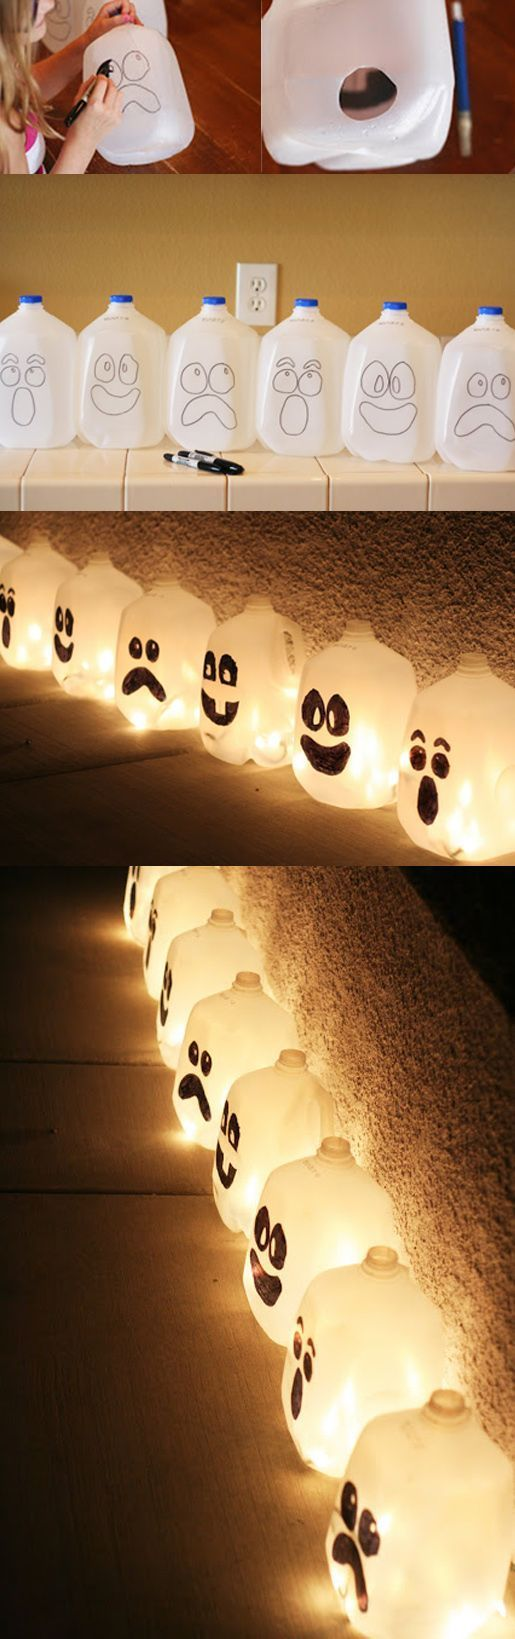 Easy homemade halloween decorations - 15 Splendid Halloween Decorations